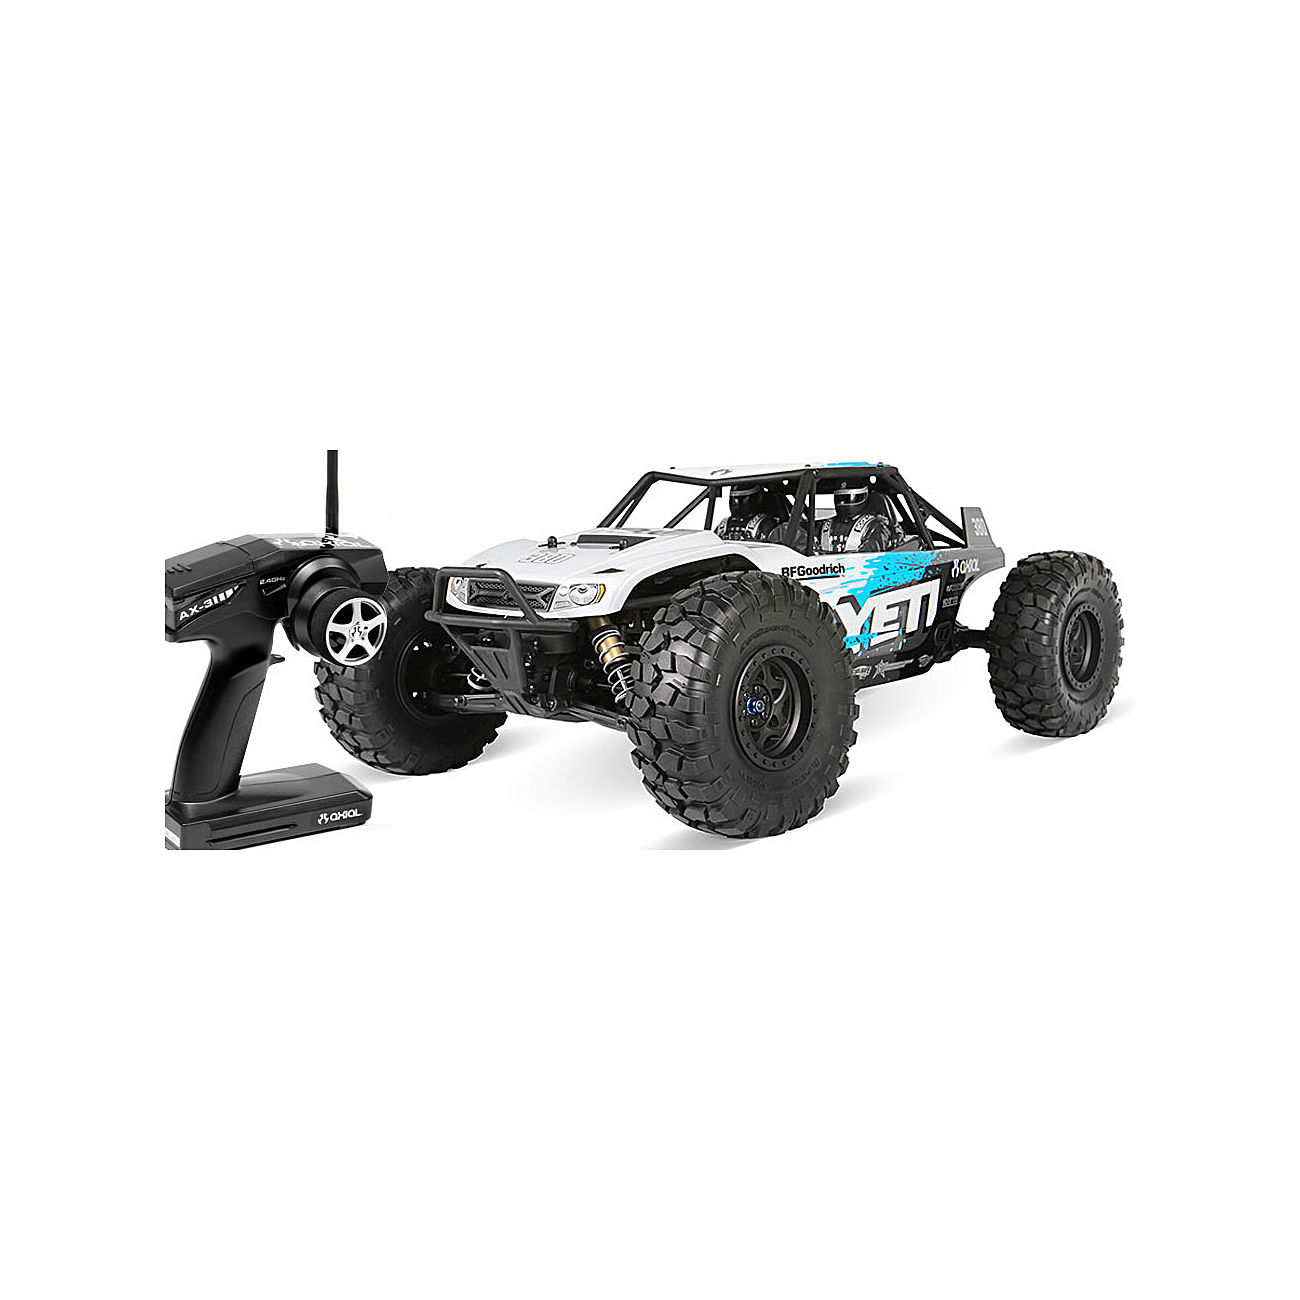 Axial 1:10 Yeti 4WD Brushless Rock Racer Truck 2,4 GHz RTR Set AX90026 0